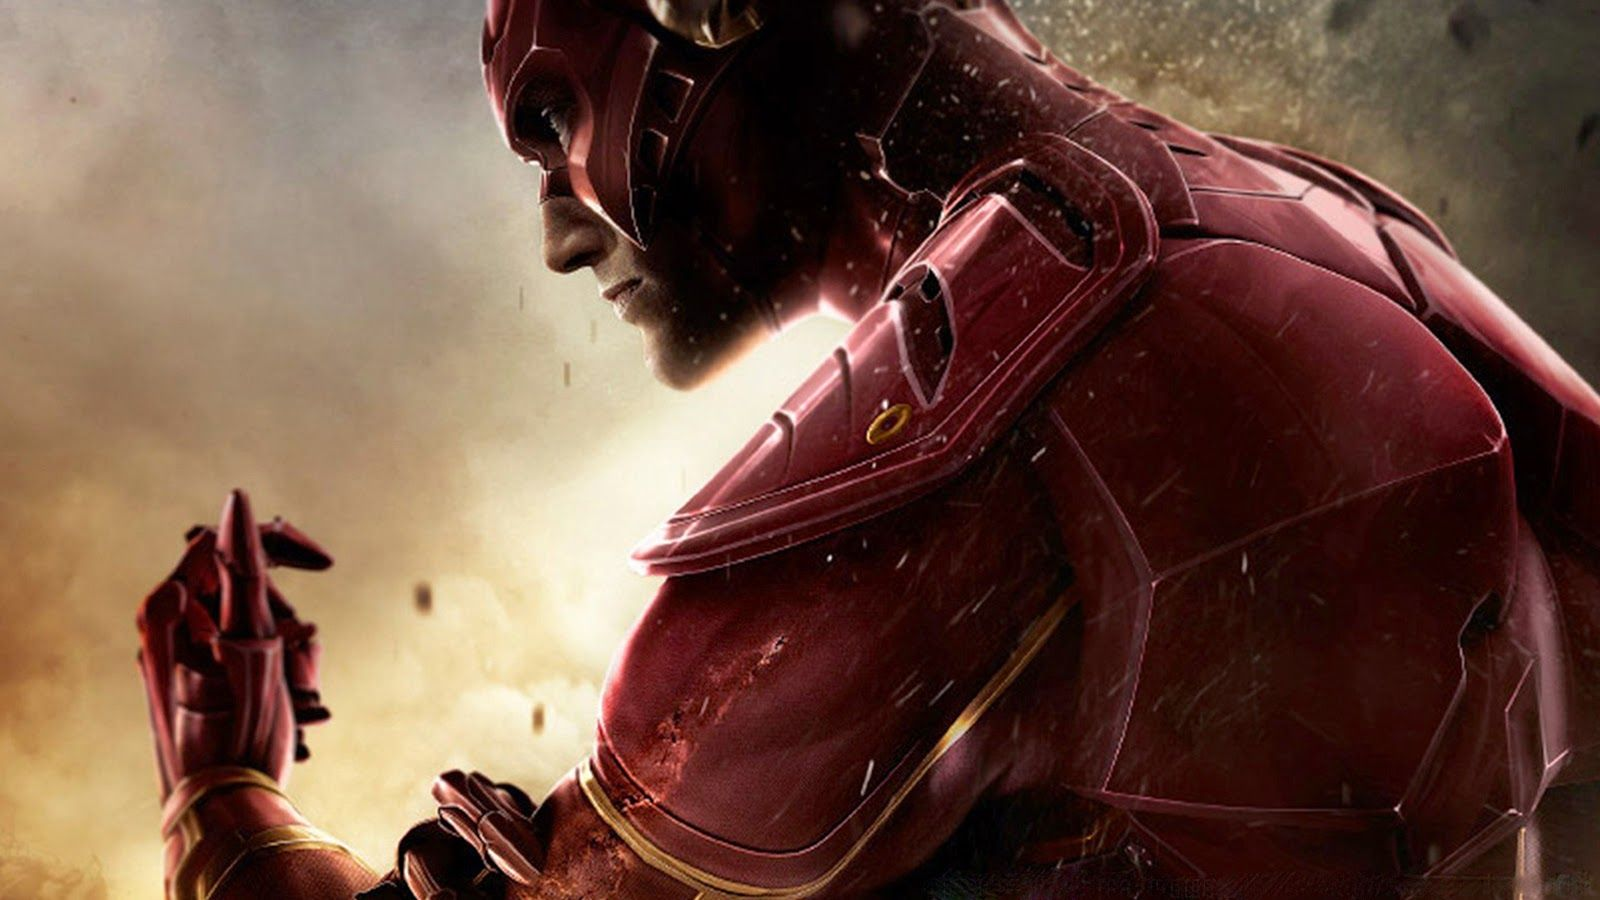 The Flash Tv Show Wallpapers Top Free The Flash Tv Show